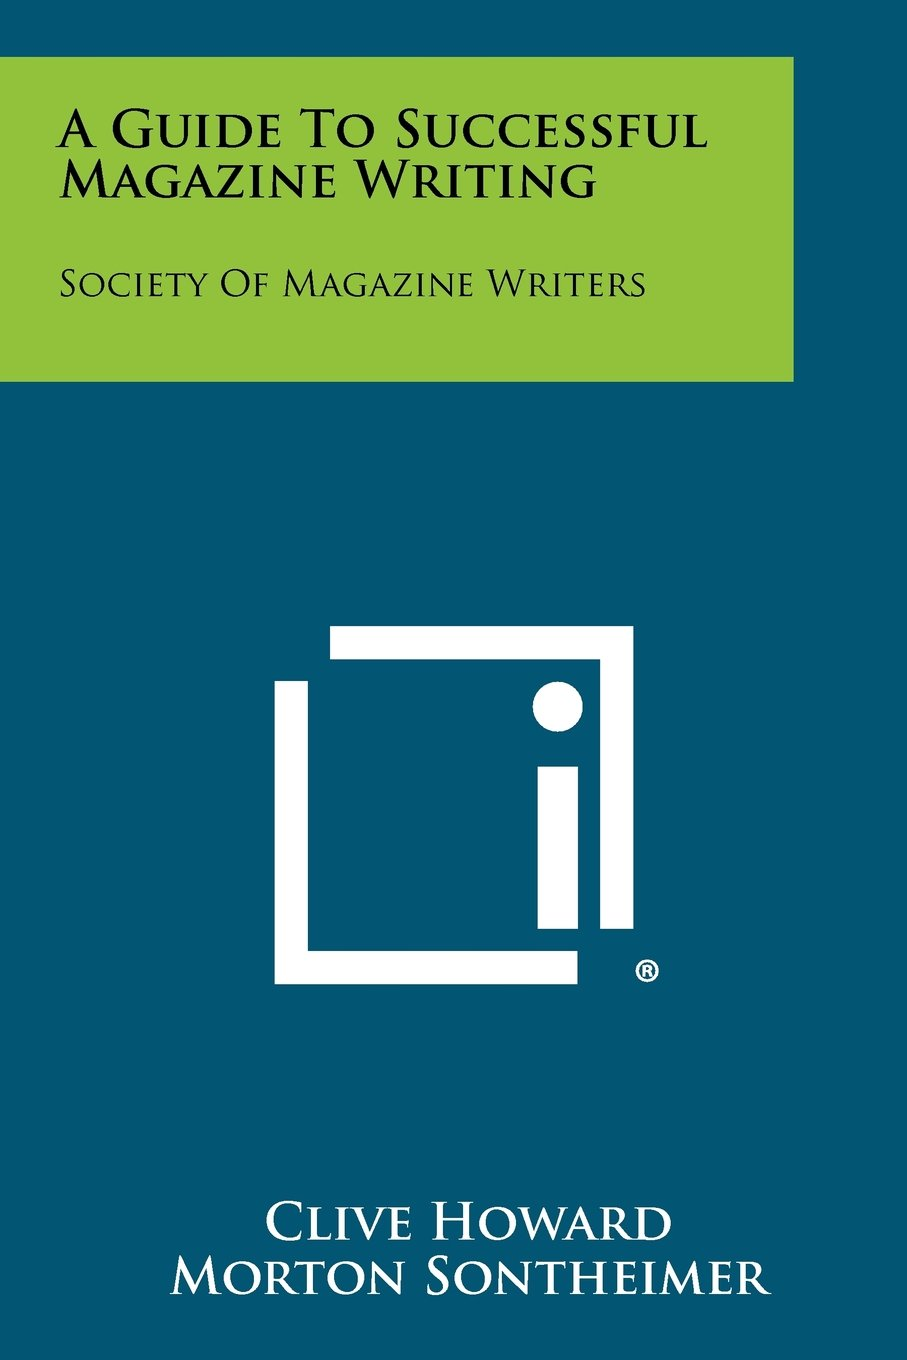 A Guide To Successful Magazine Writing: Society Of Magazine Writers ePub fb2 book